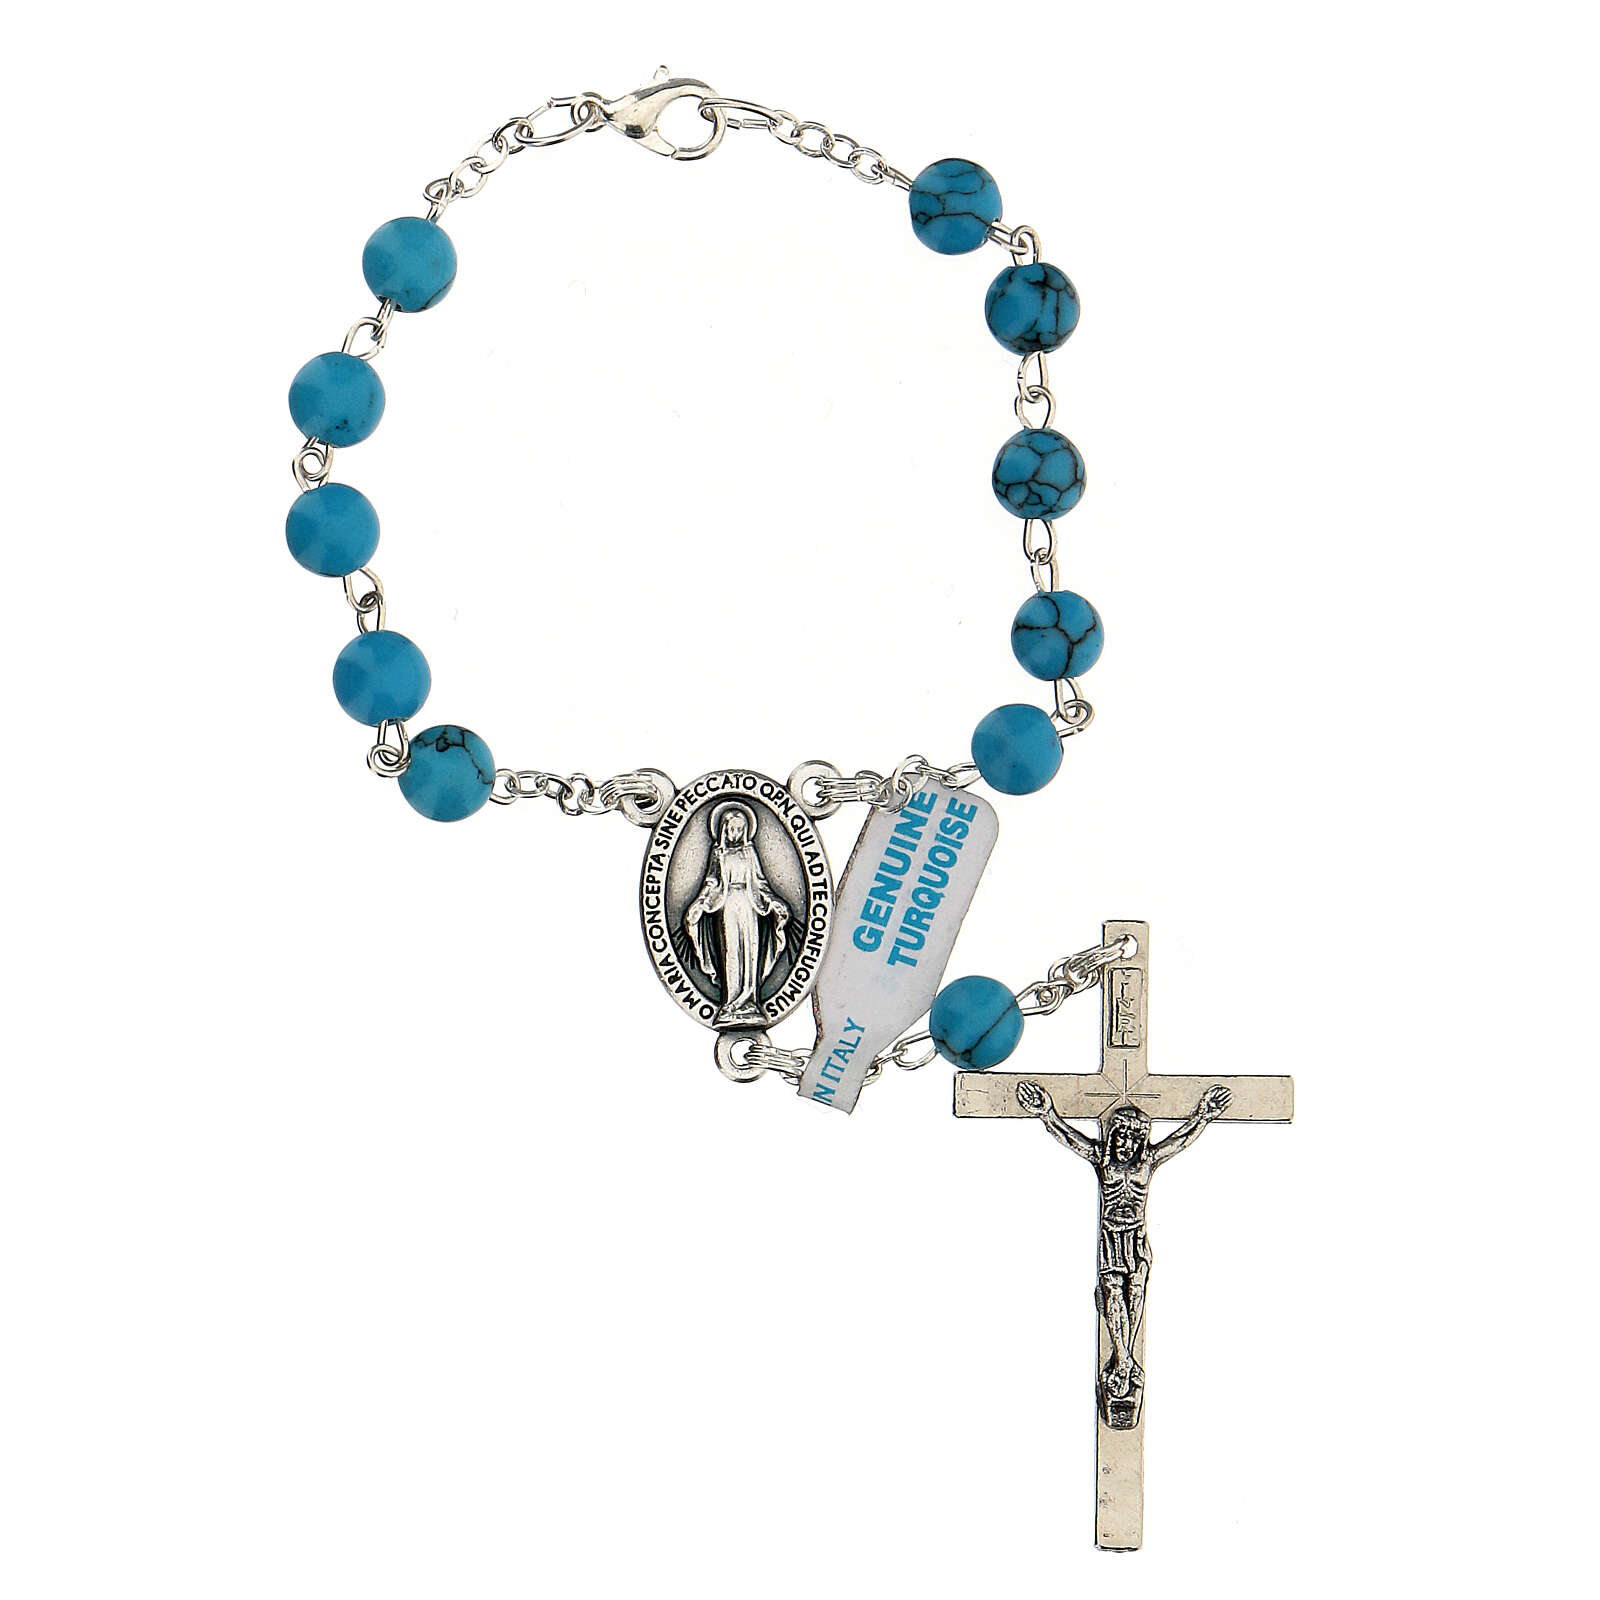 Decade rosary with real turquoise 6 mm beads Mary medal 4